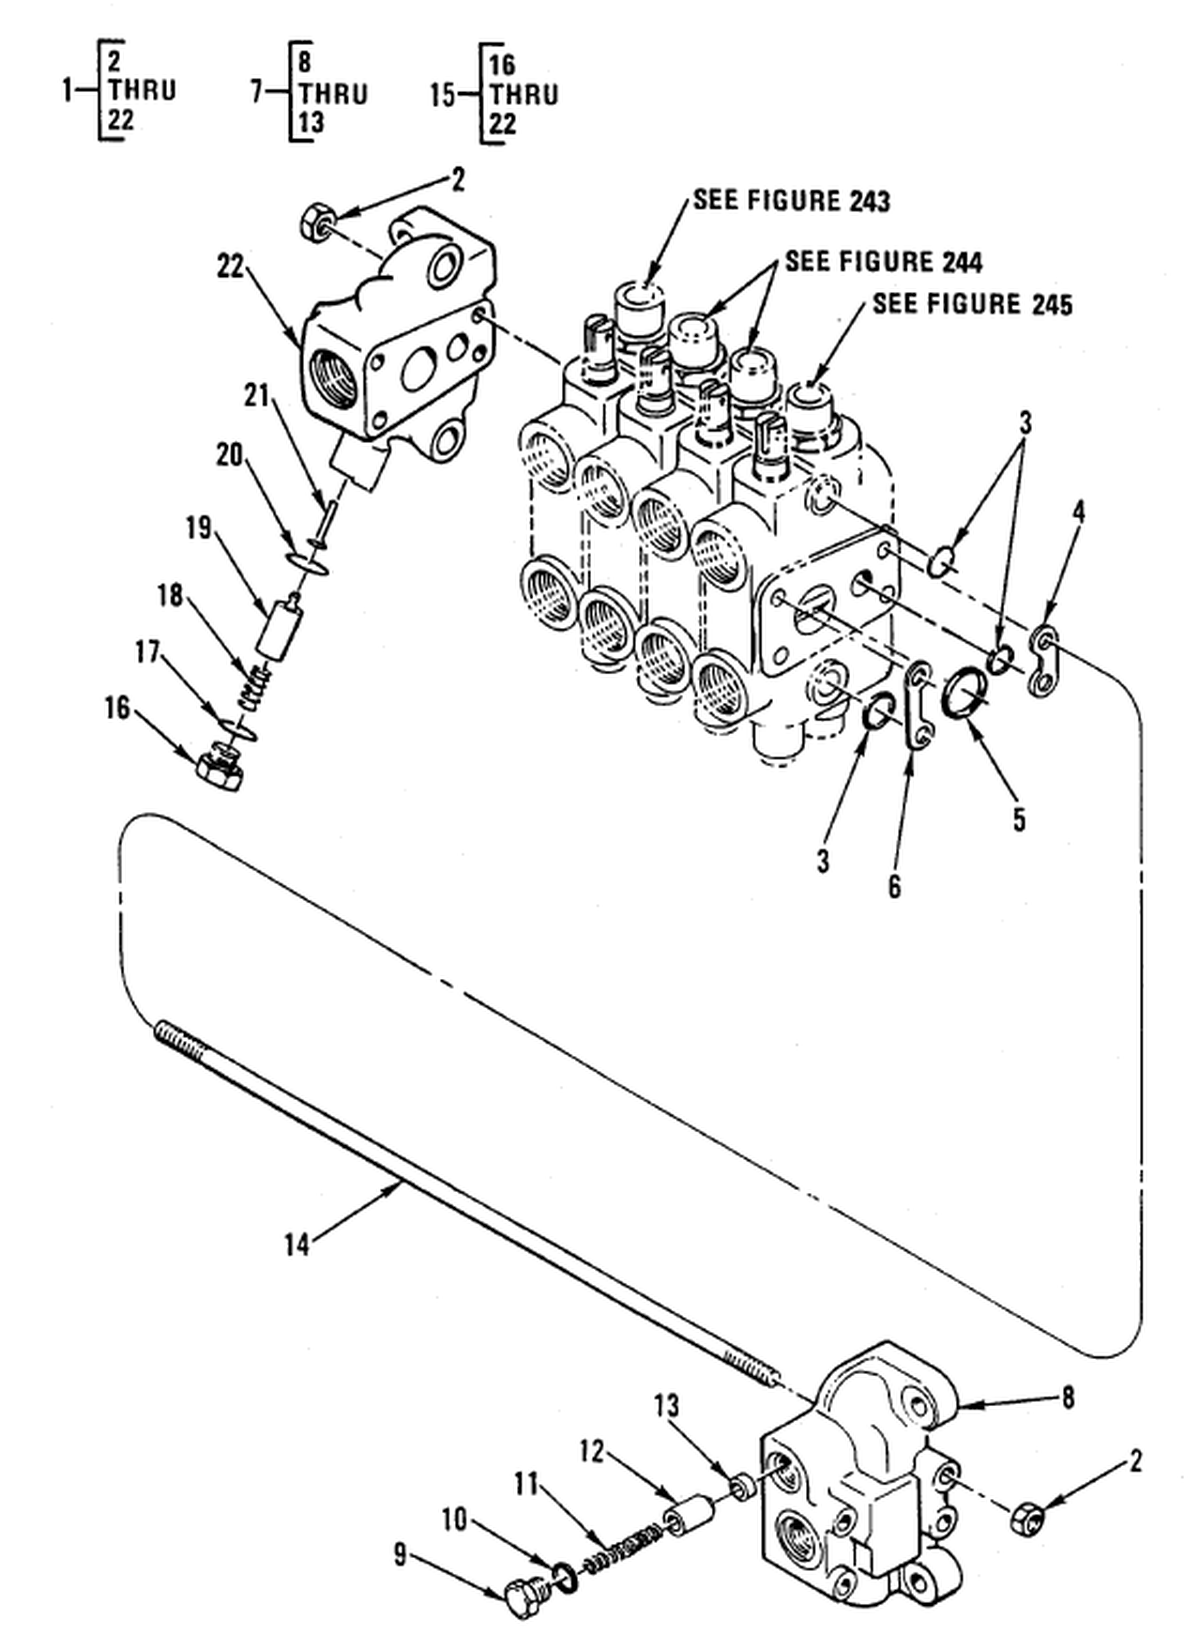 00 2 Figure 242 Hydraulic Control Valve Backhoe